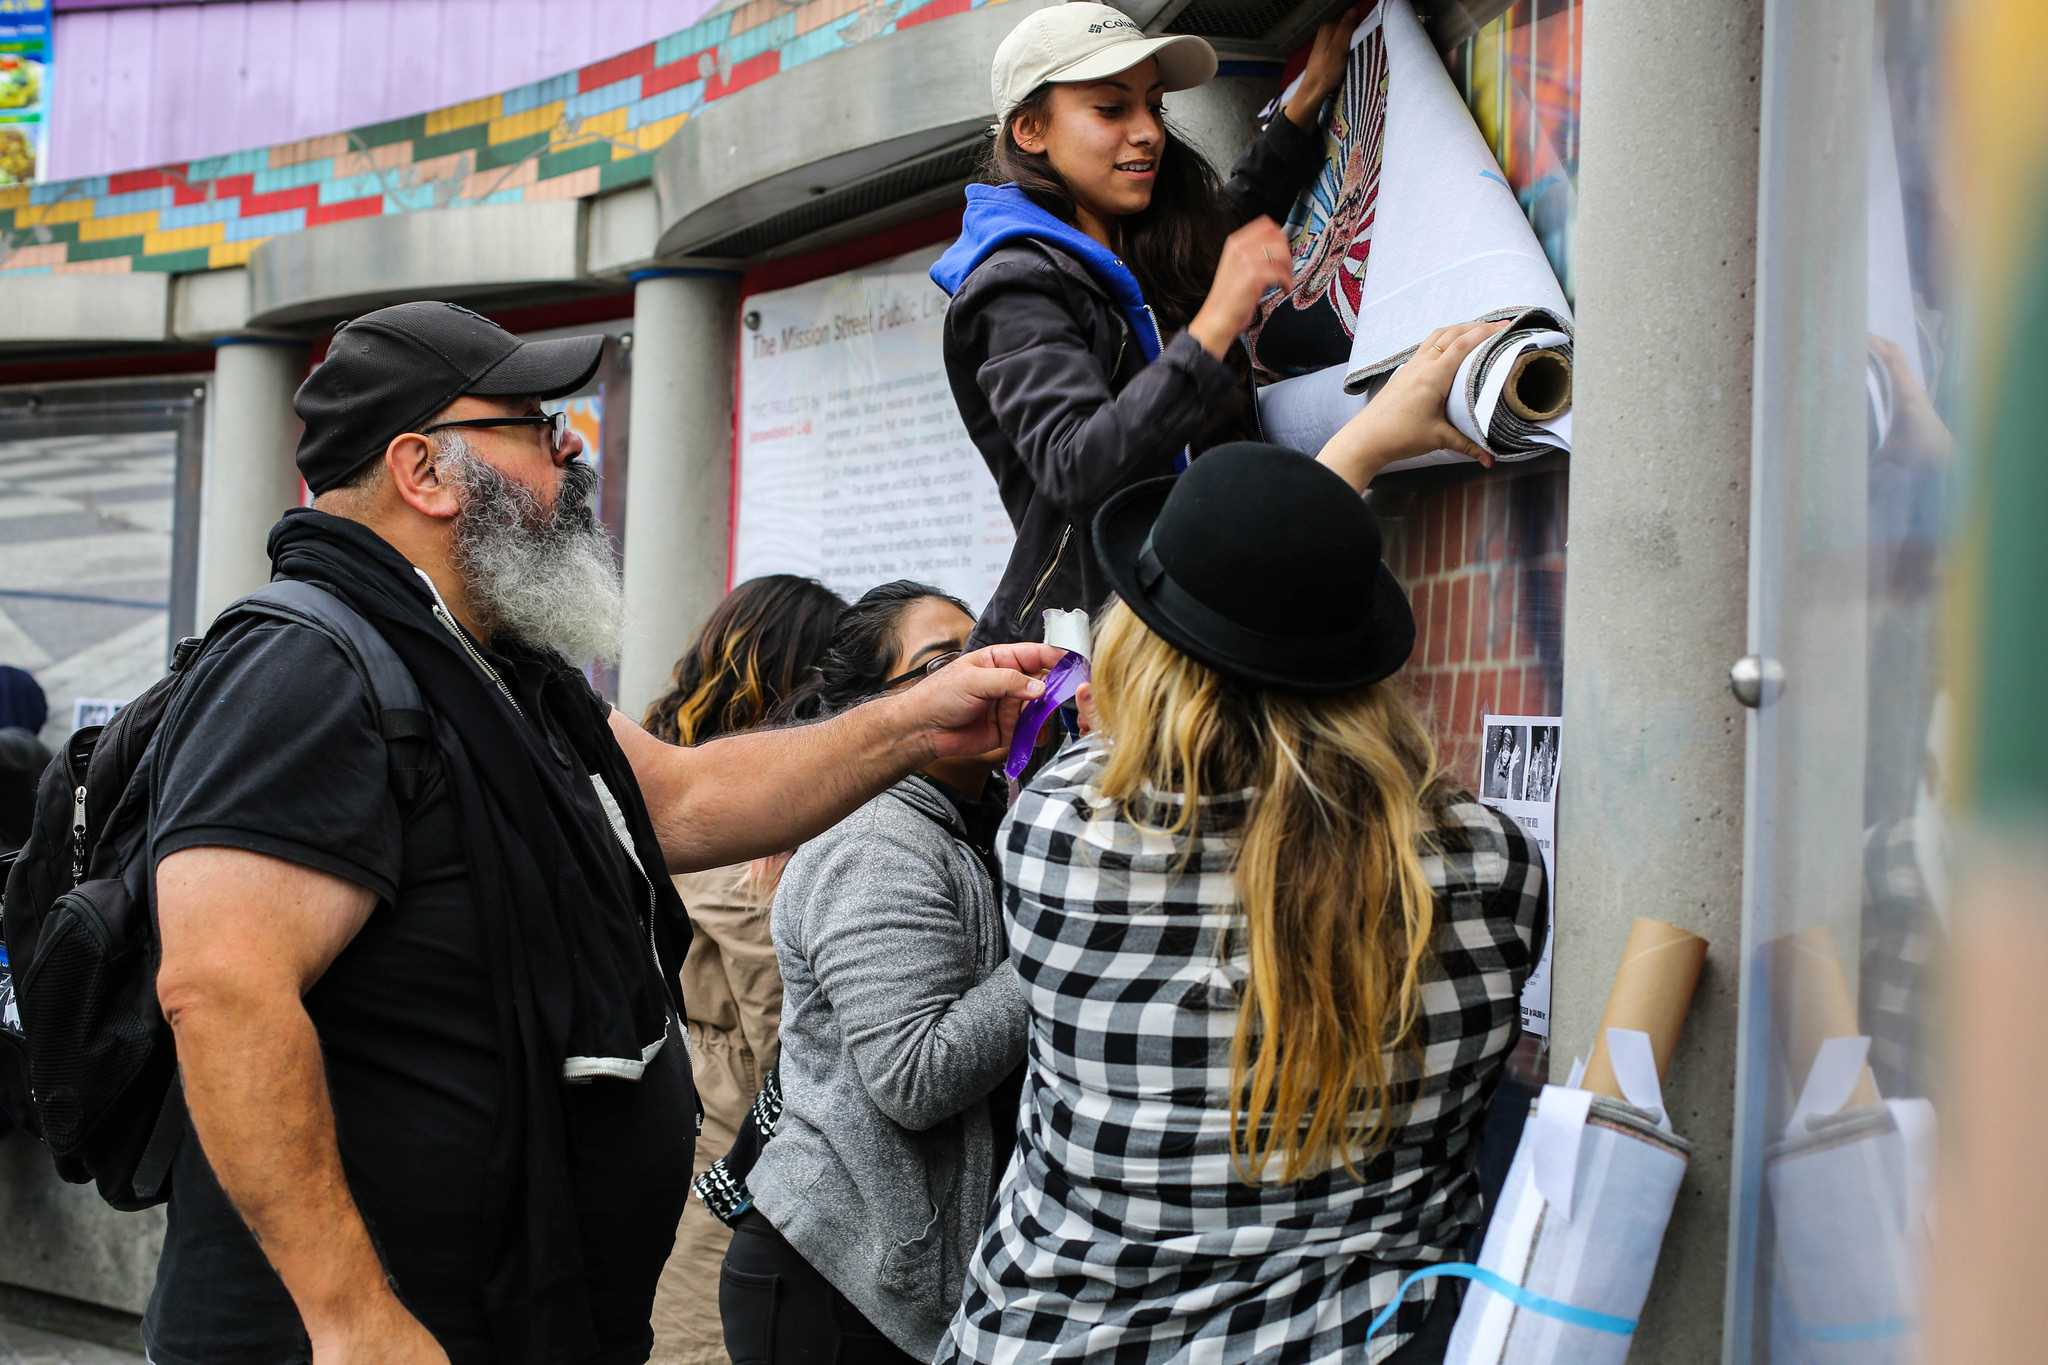 Victor De La Rosa, associate professor at SF State in the Art Department (far left) and his volunteers ( left) Emily Cruz, Veronica Rued ( center) , and Nash Bellows puts up one of his art  pieces at the 16th street Bart station Tuesday, Oct. 27. (Angelica Ekeke/Xpress)